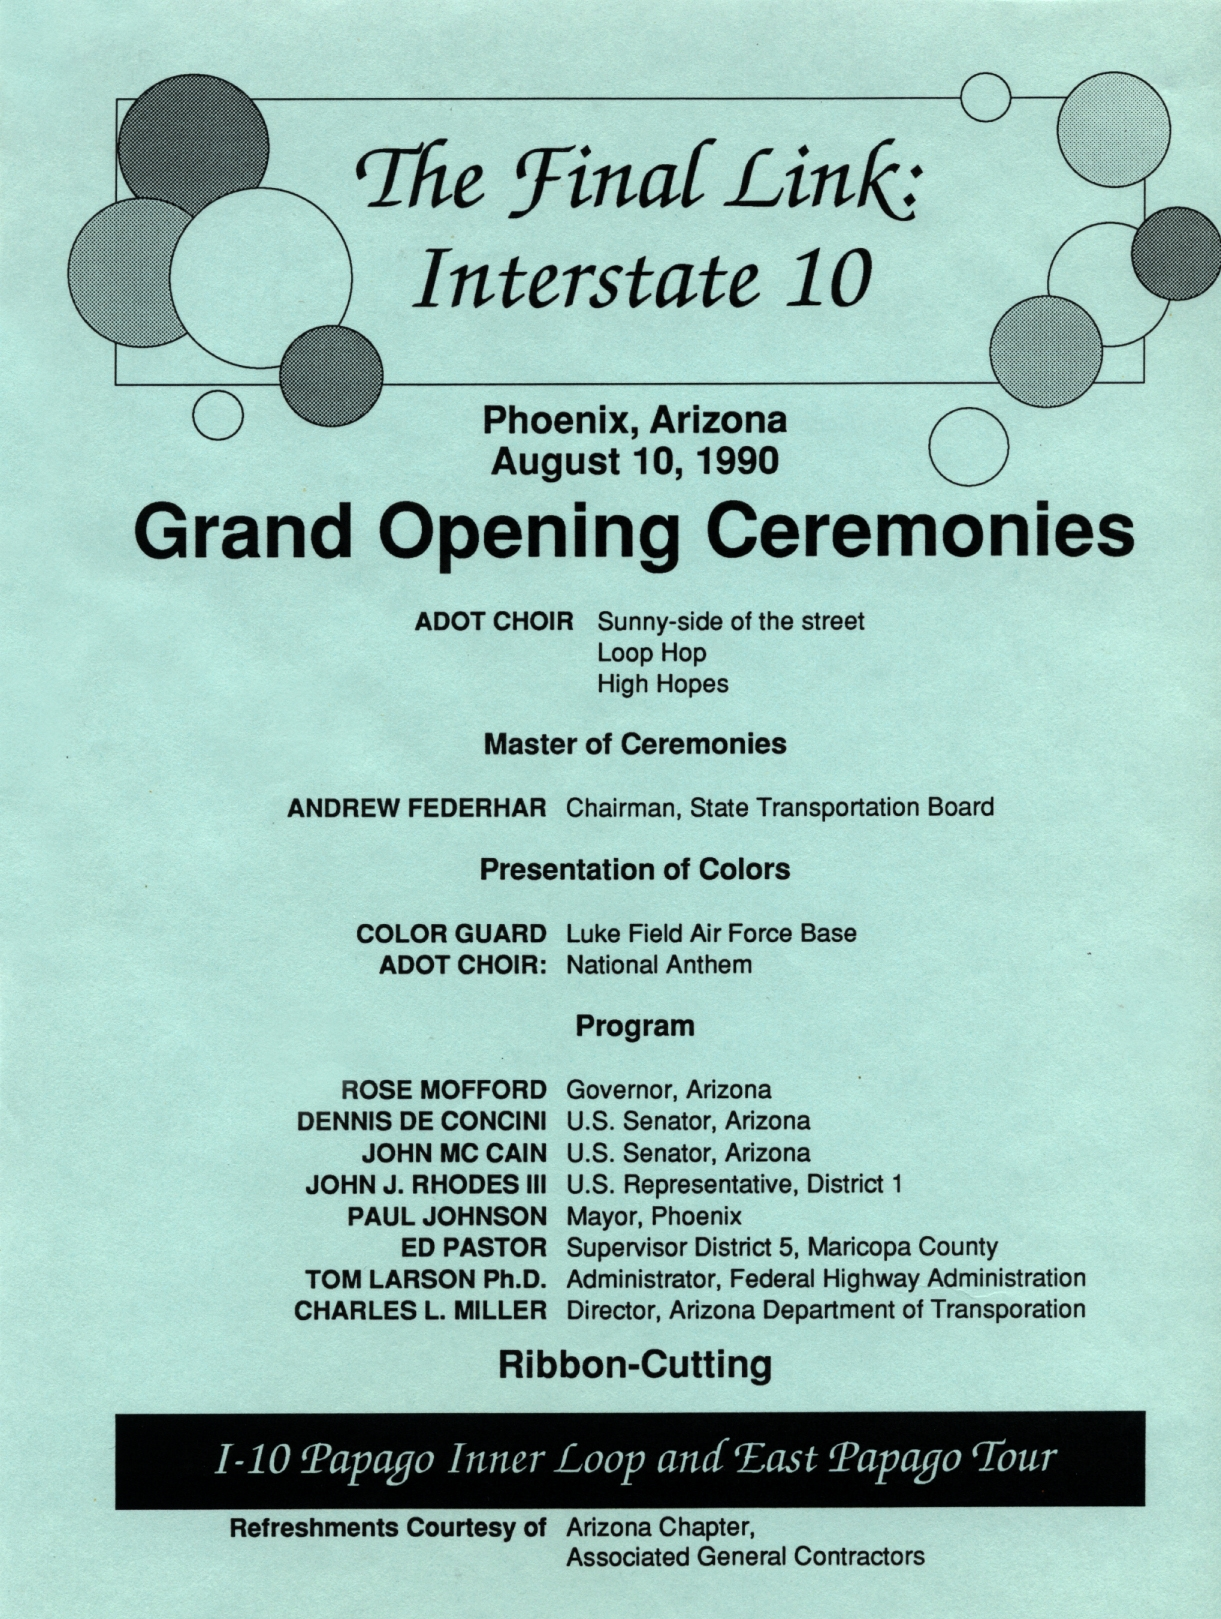 Invitation to the grand opening ceremonies for the final link of I-10